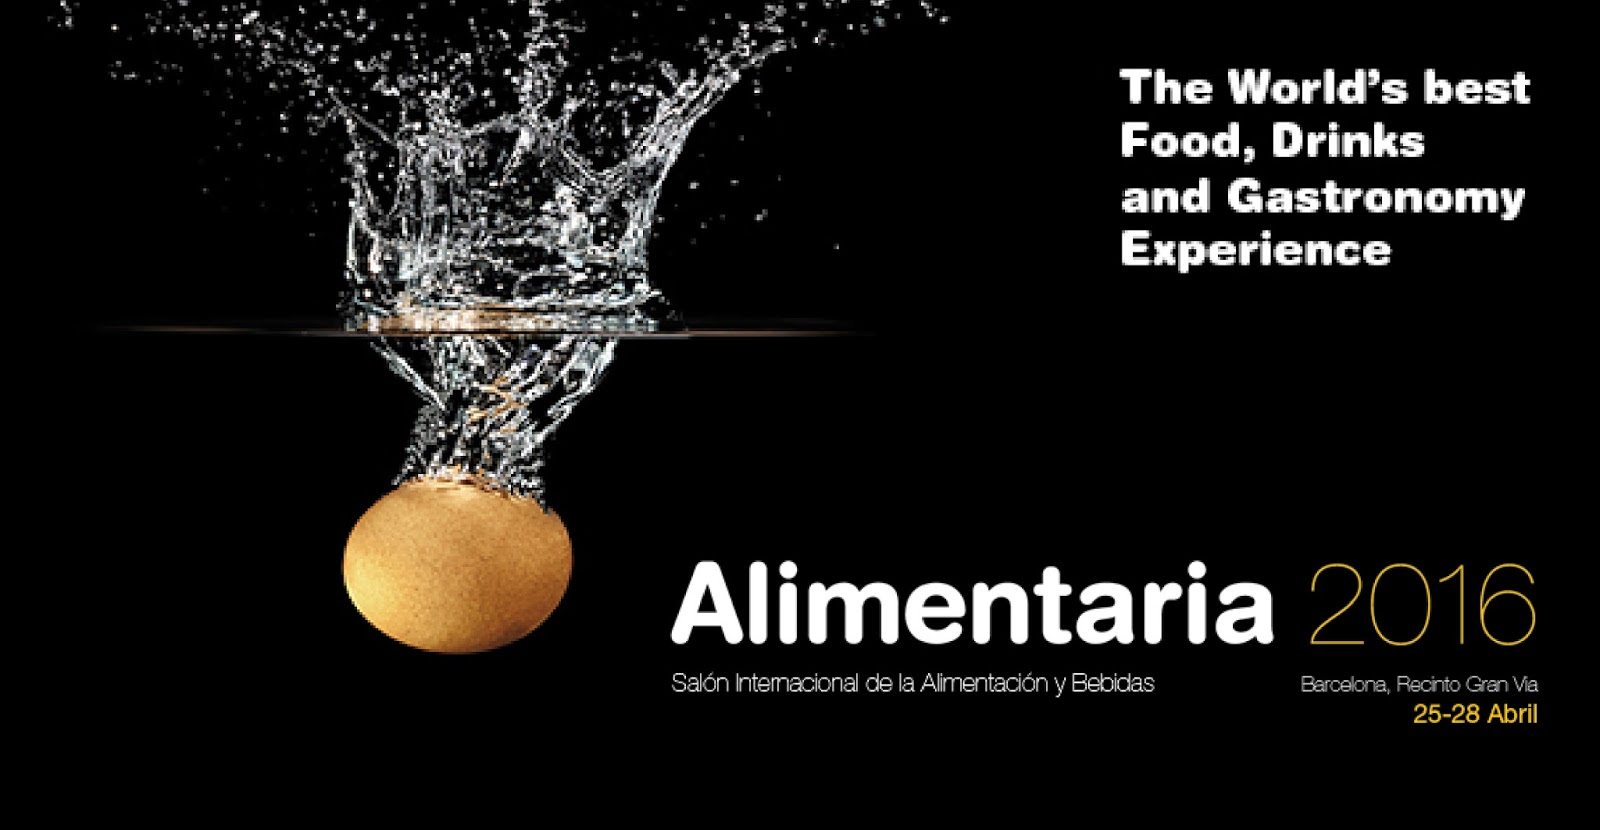 Salón Internacional de la alimentación y Bebidas. The World´s best Food, Drinks and Gastronomy Experience